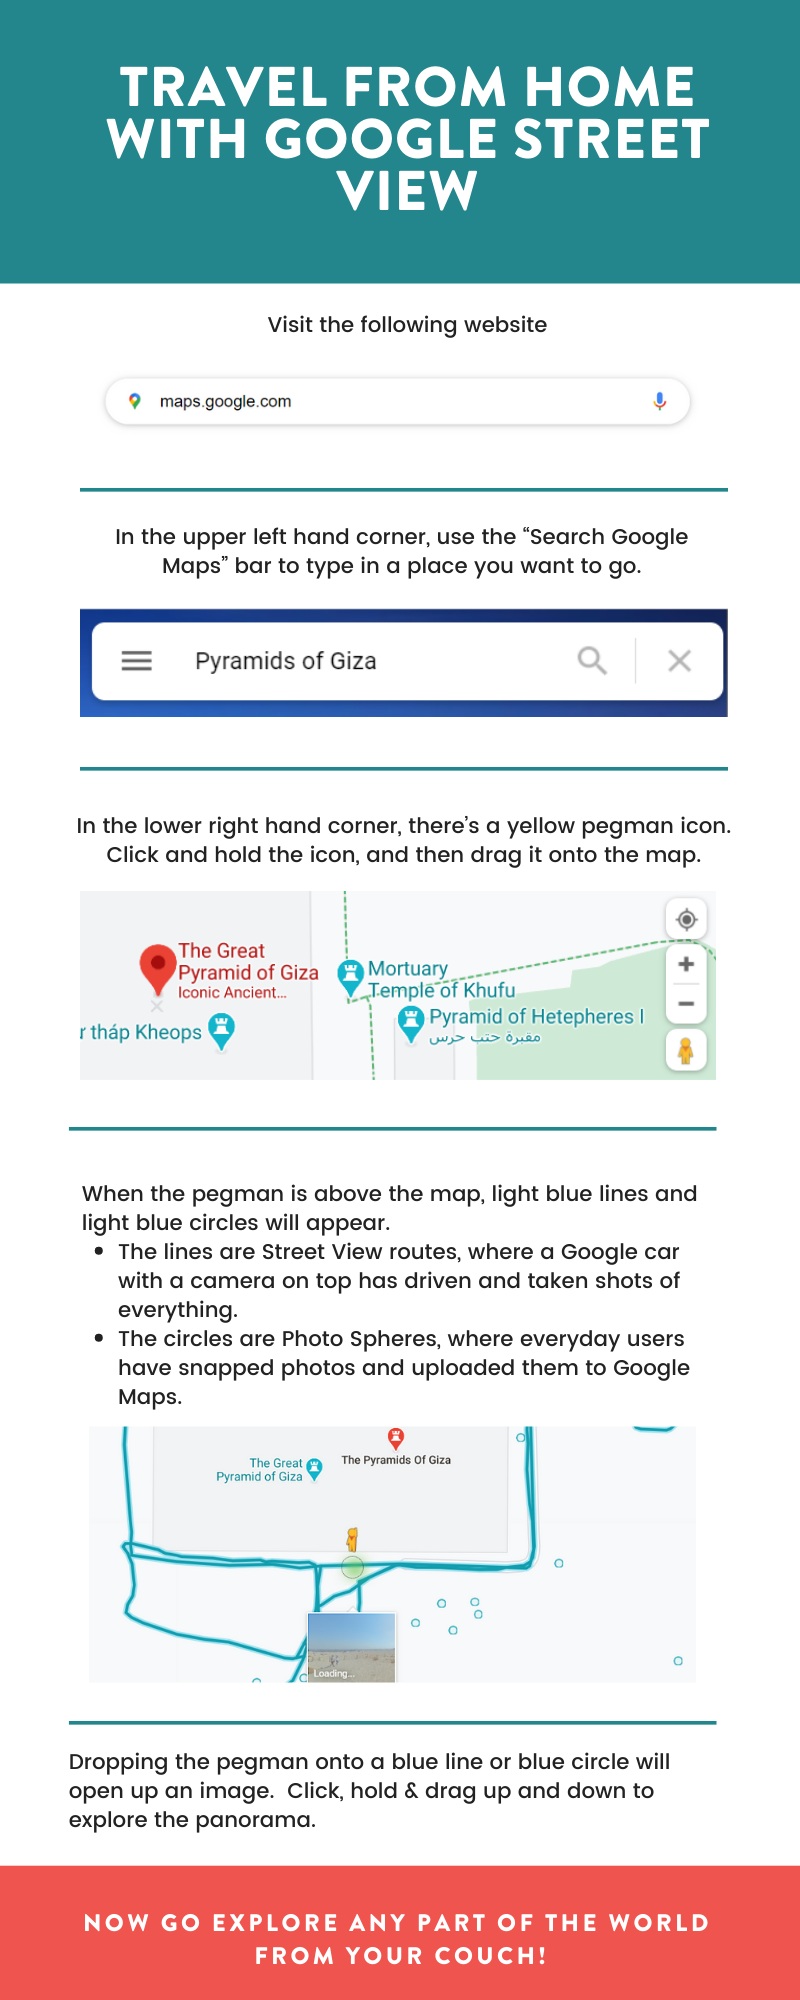 Infographic detailing how to use Google Street View to travel from home